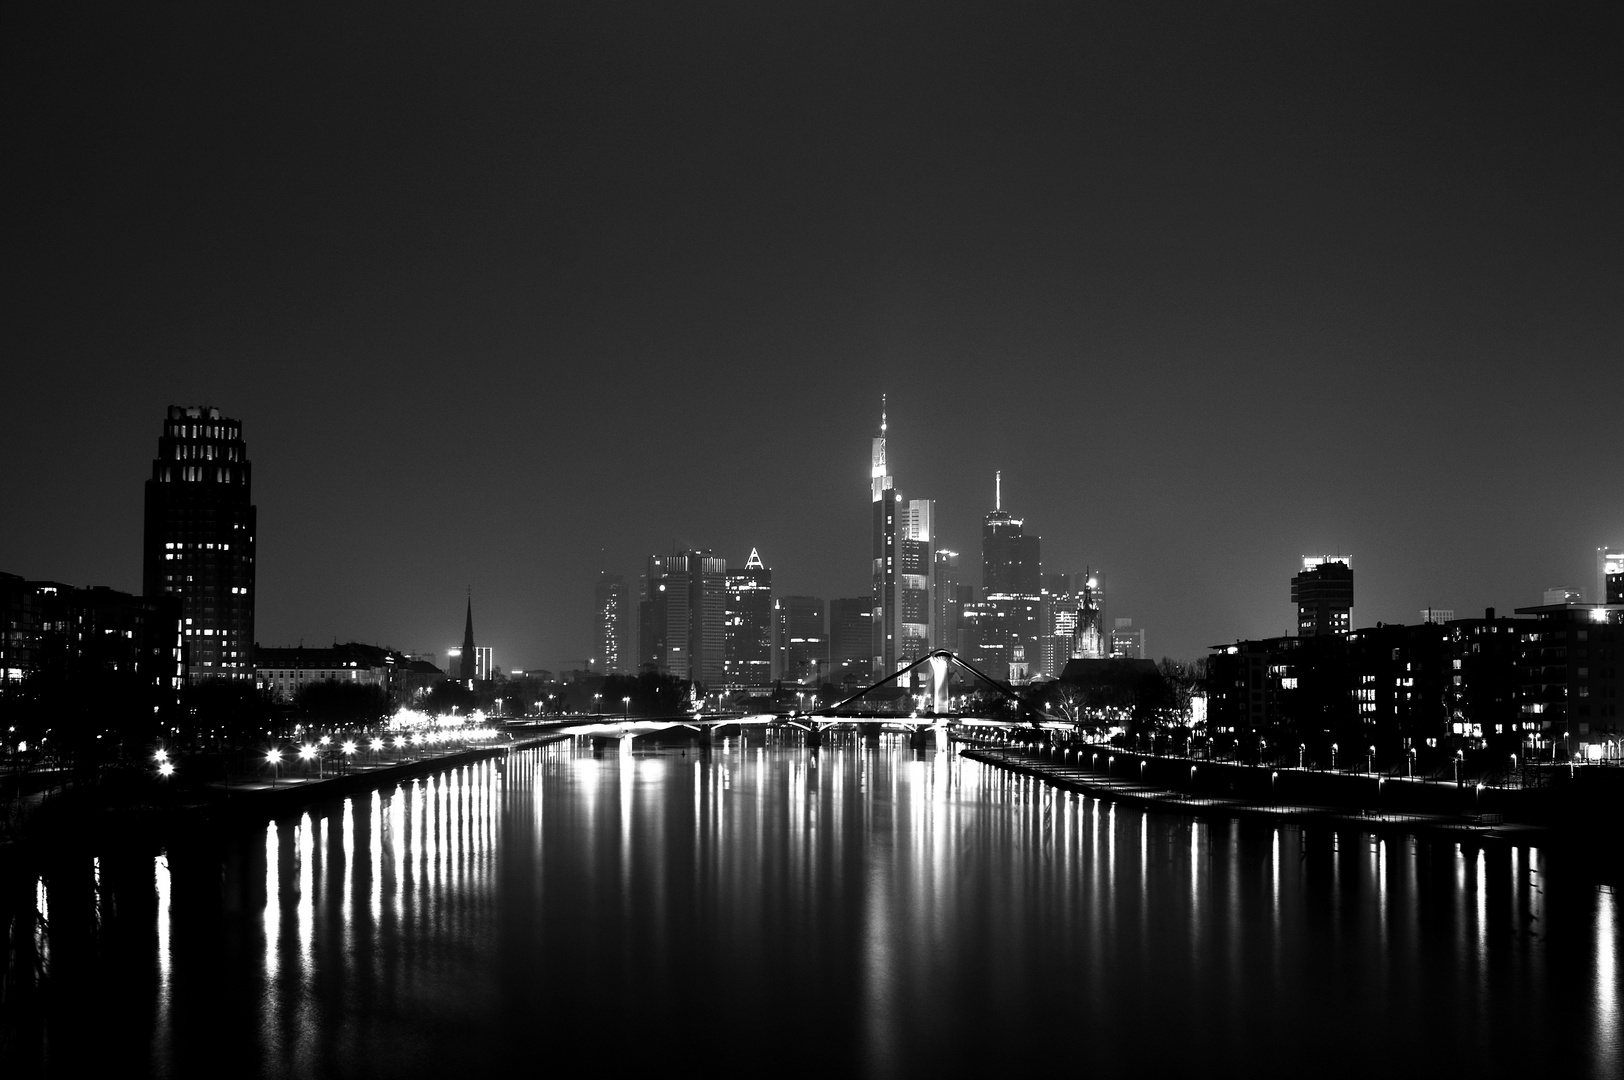 Frankfurt Skyline at Night